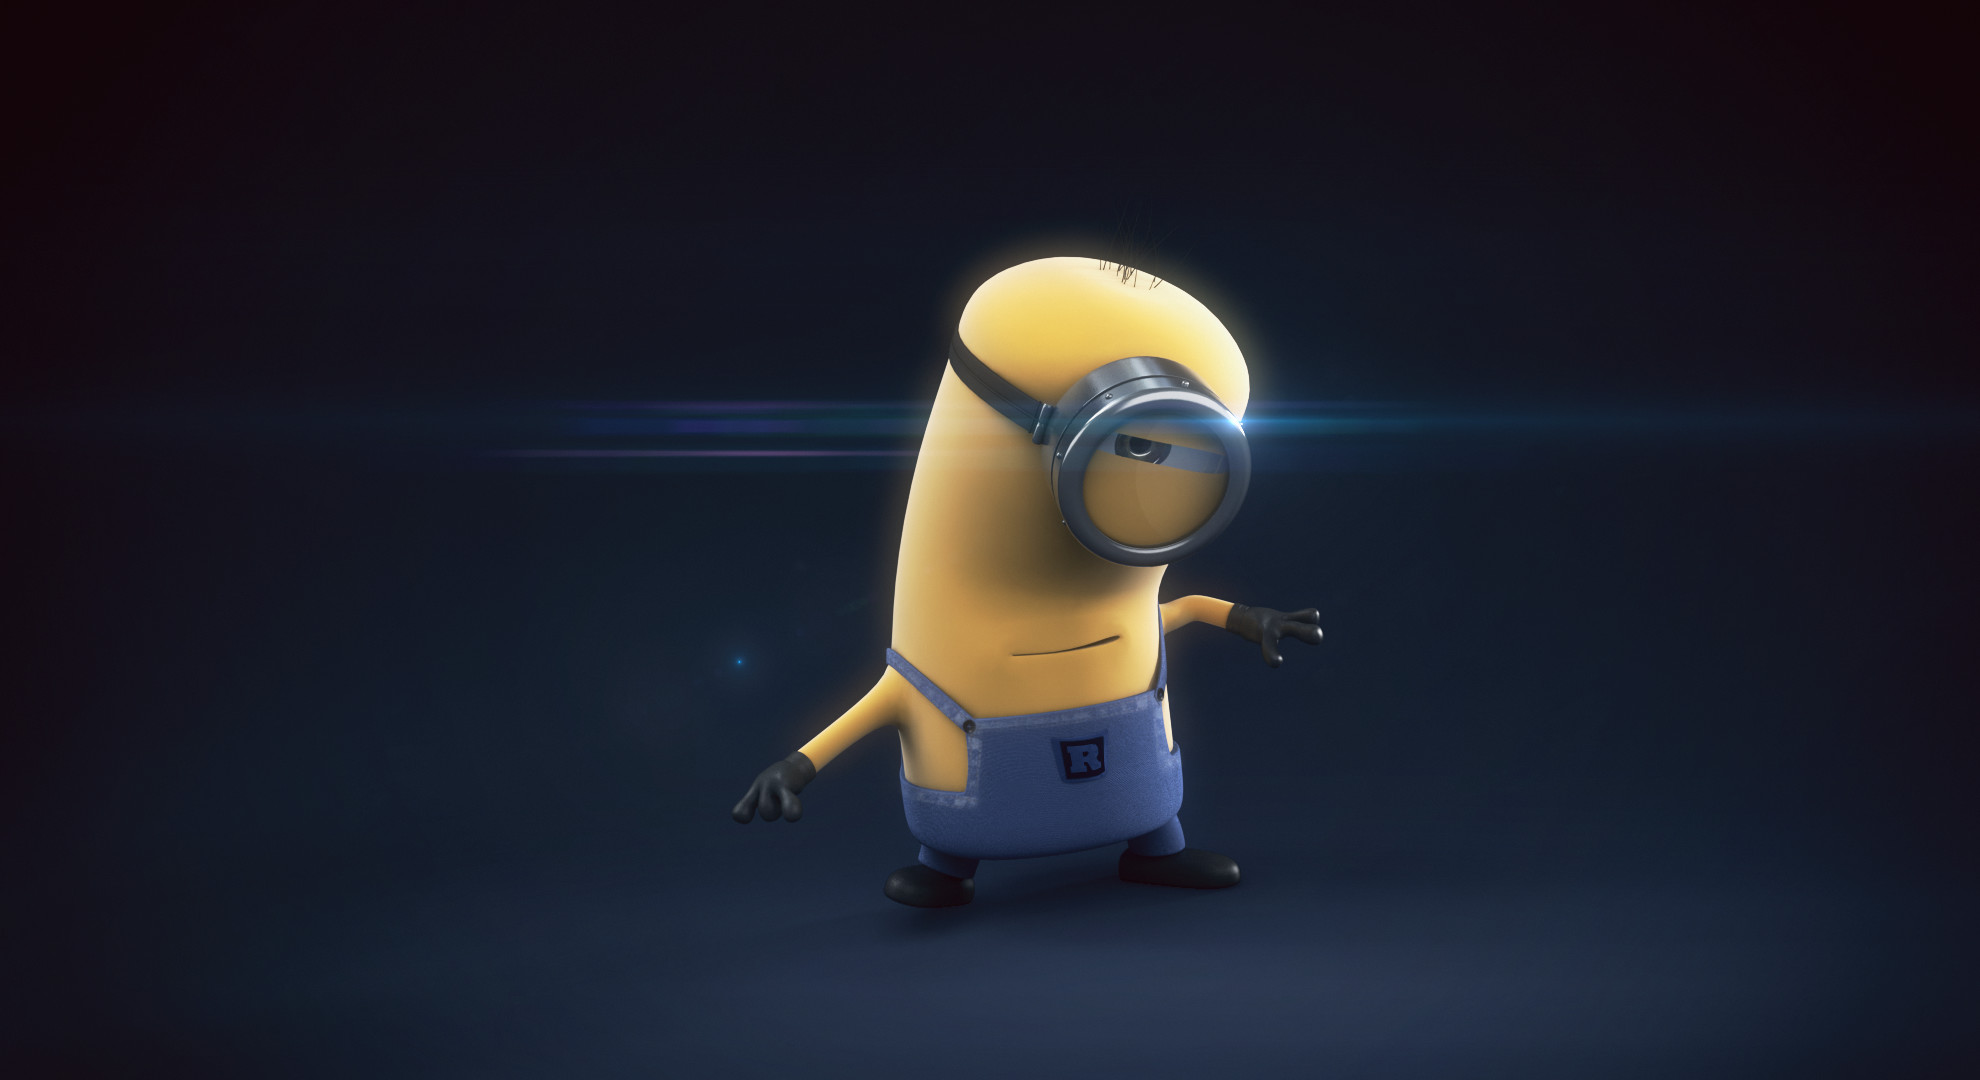 1980x1080 Minions Wallpaper Background PC Free